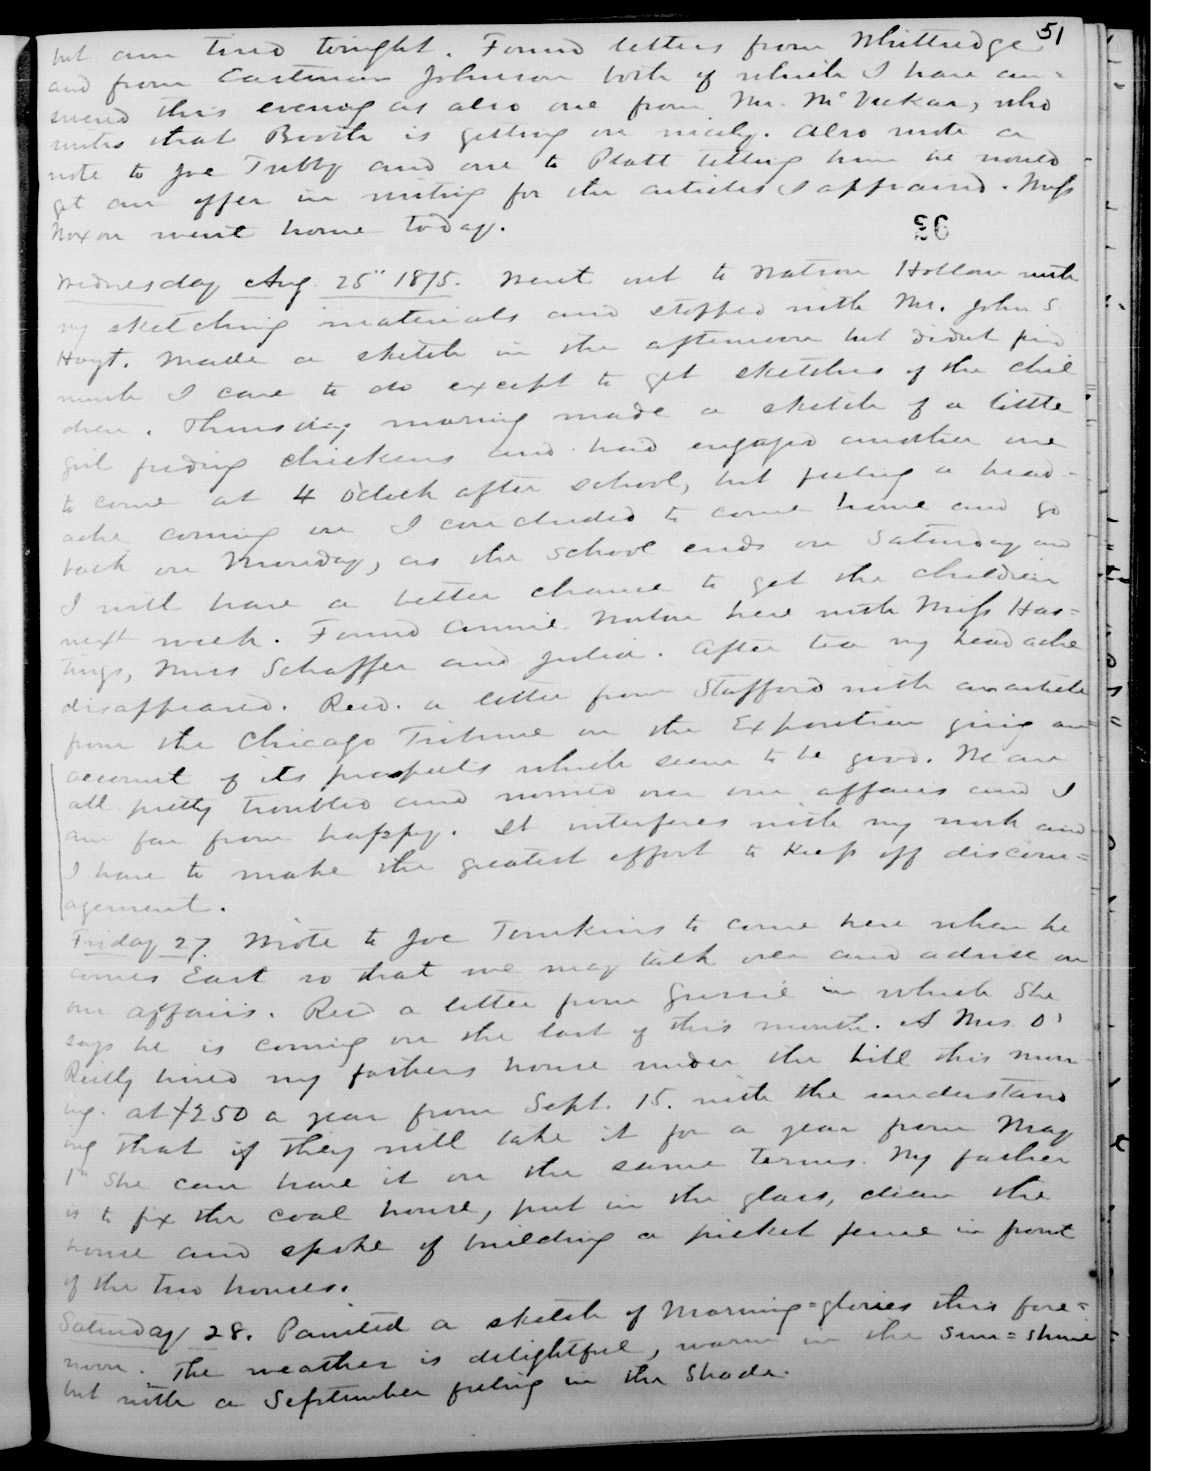 Image for entry